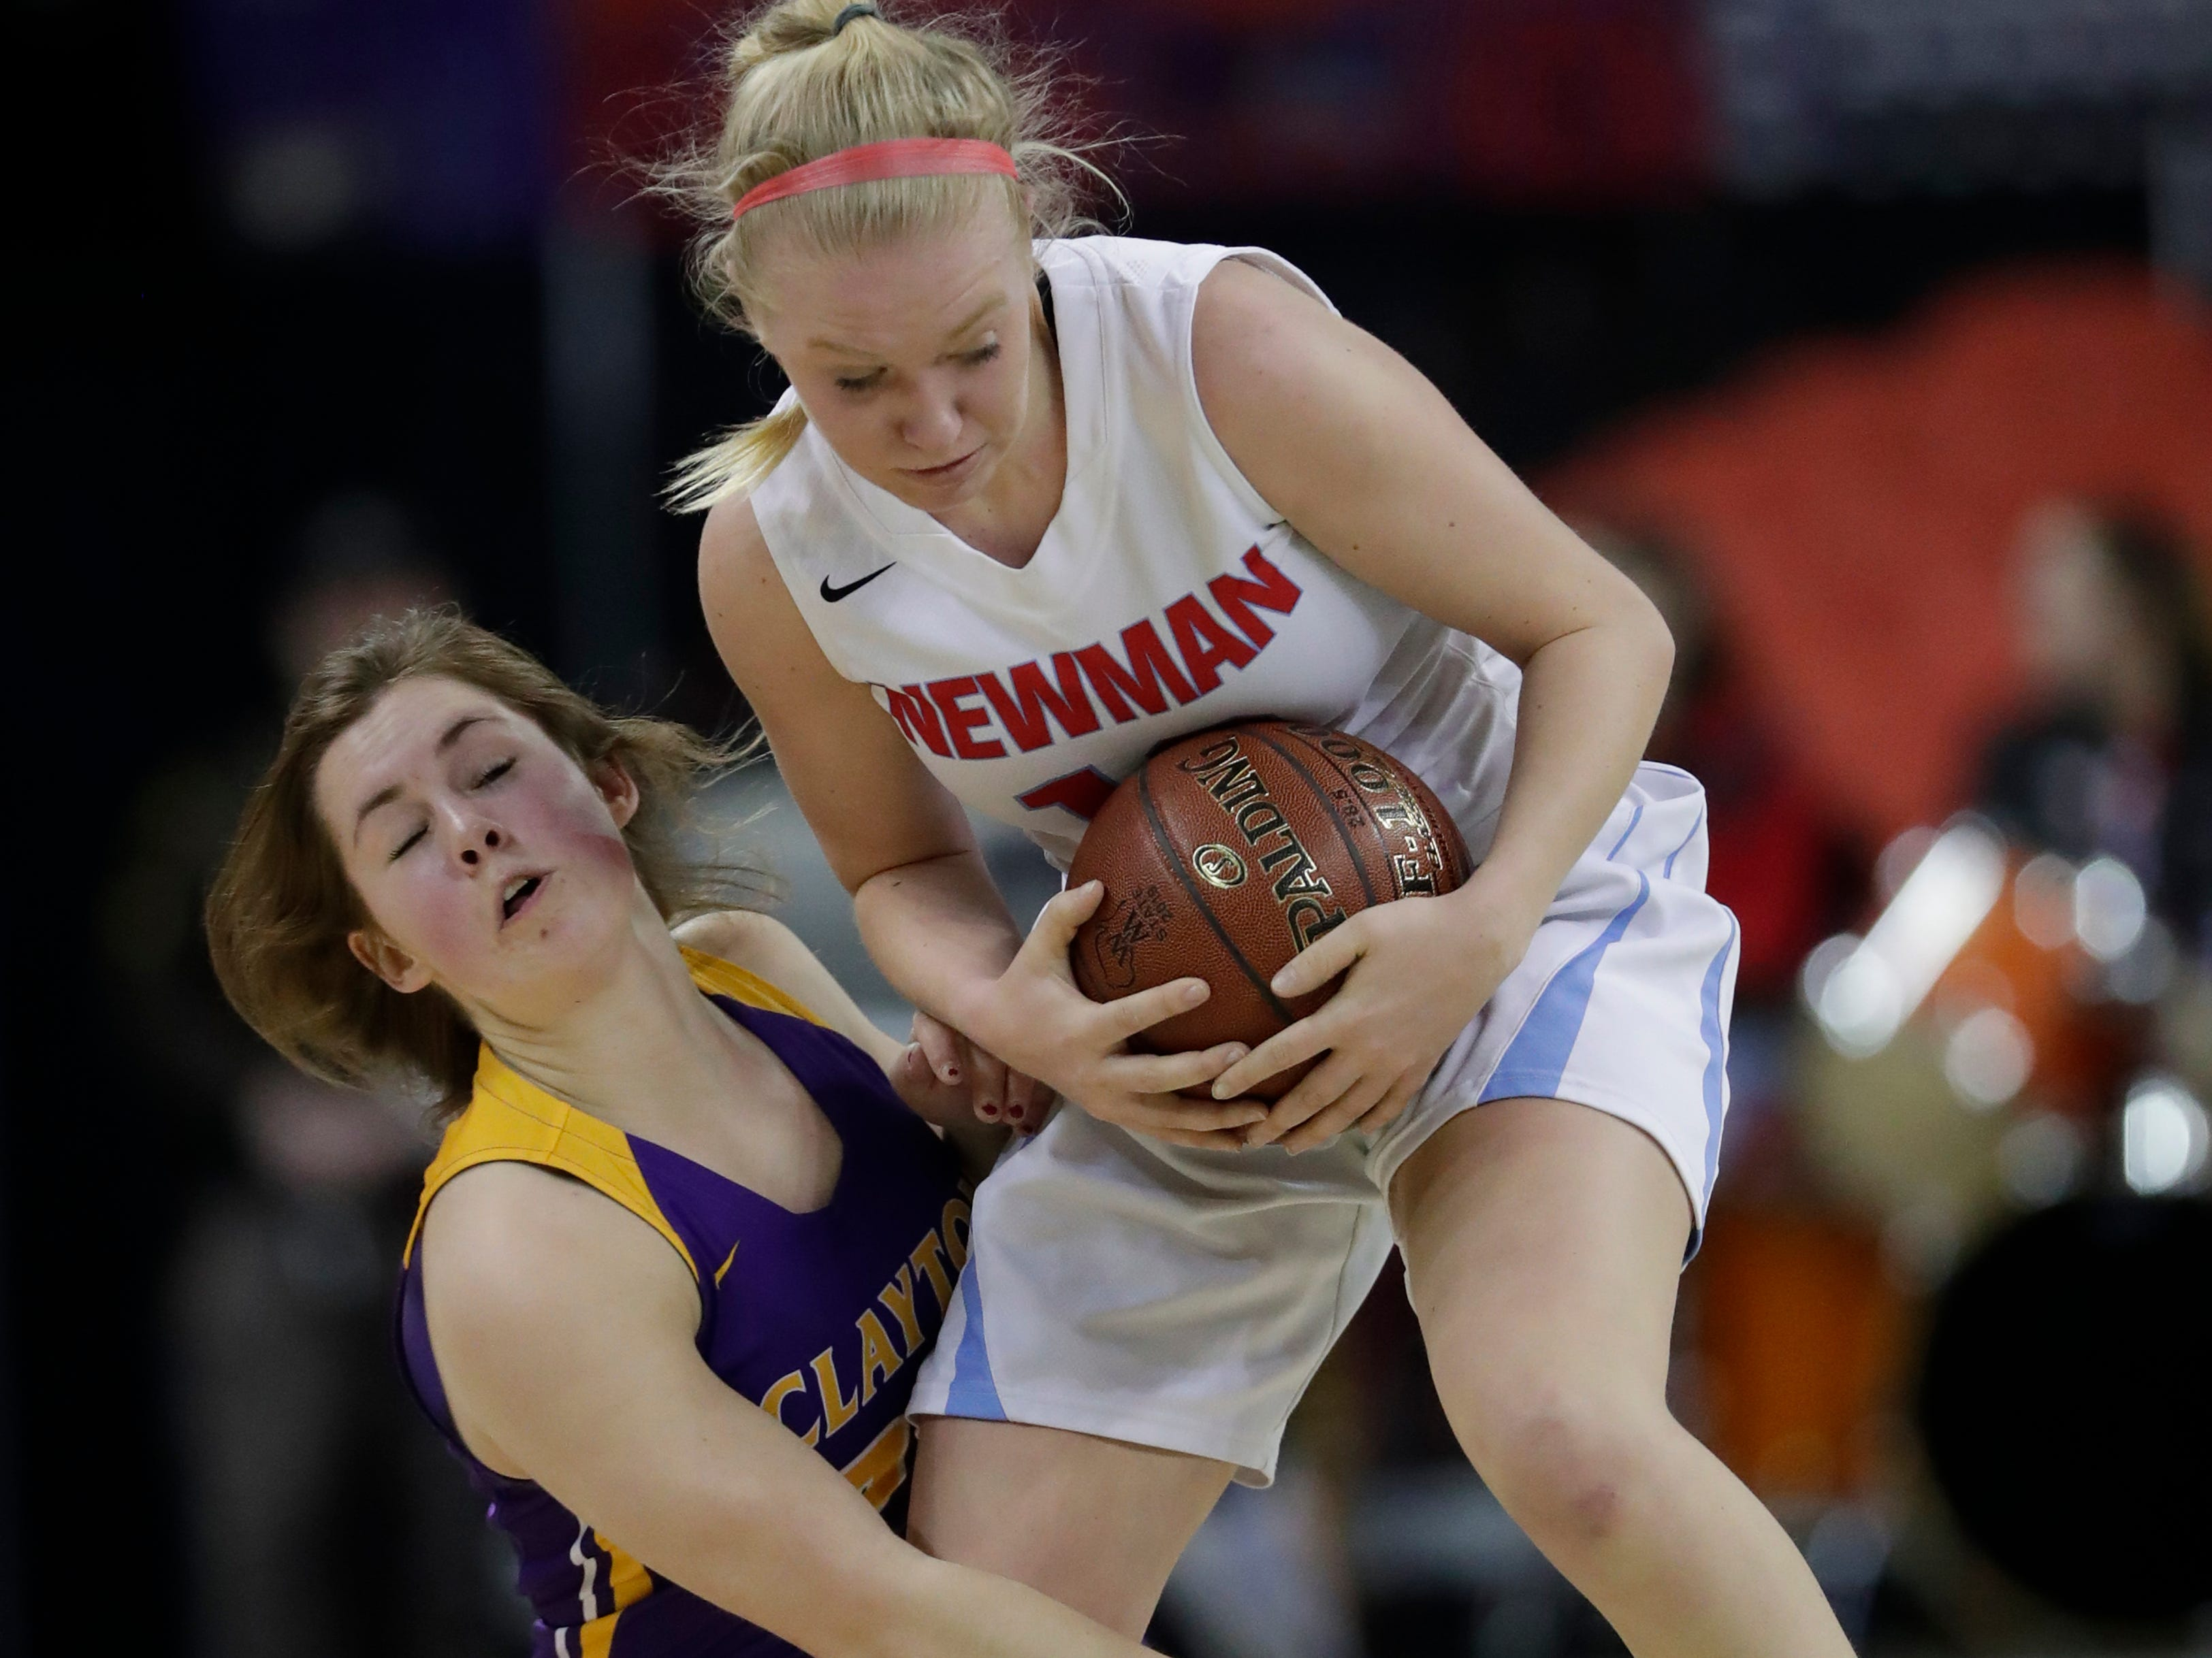 Clayton's Kailey Ketz (24) collides with Wausau Newman Catholic's Mackenzie Krach (12) during their Division 5 semifinal game at the WIAA girls state basketball tournament Friday, March 8, 2019, at the Resch Center in Ashwaubenon, Wis. Dan Powers/USA TODAY NETWORK-Wisconsin